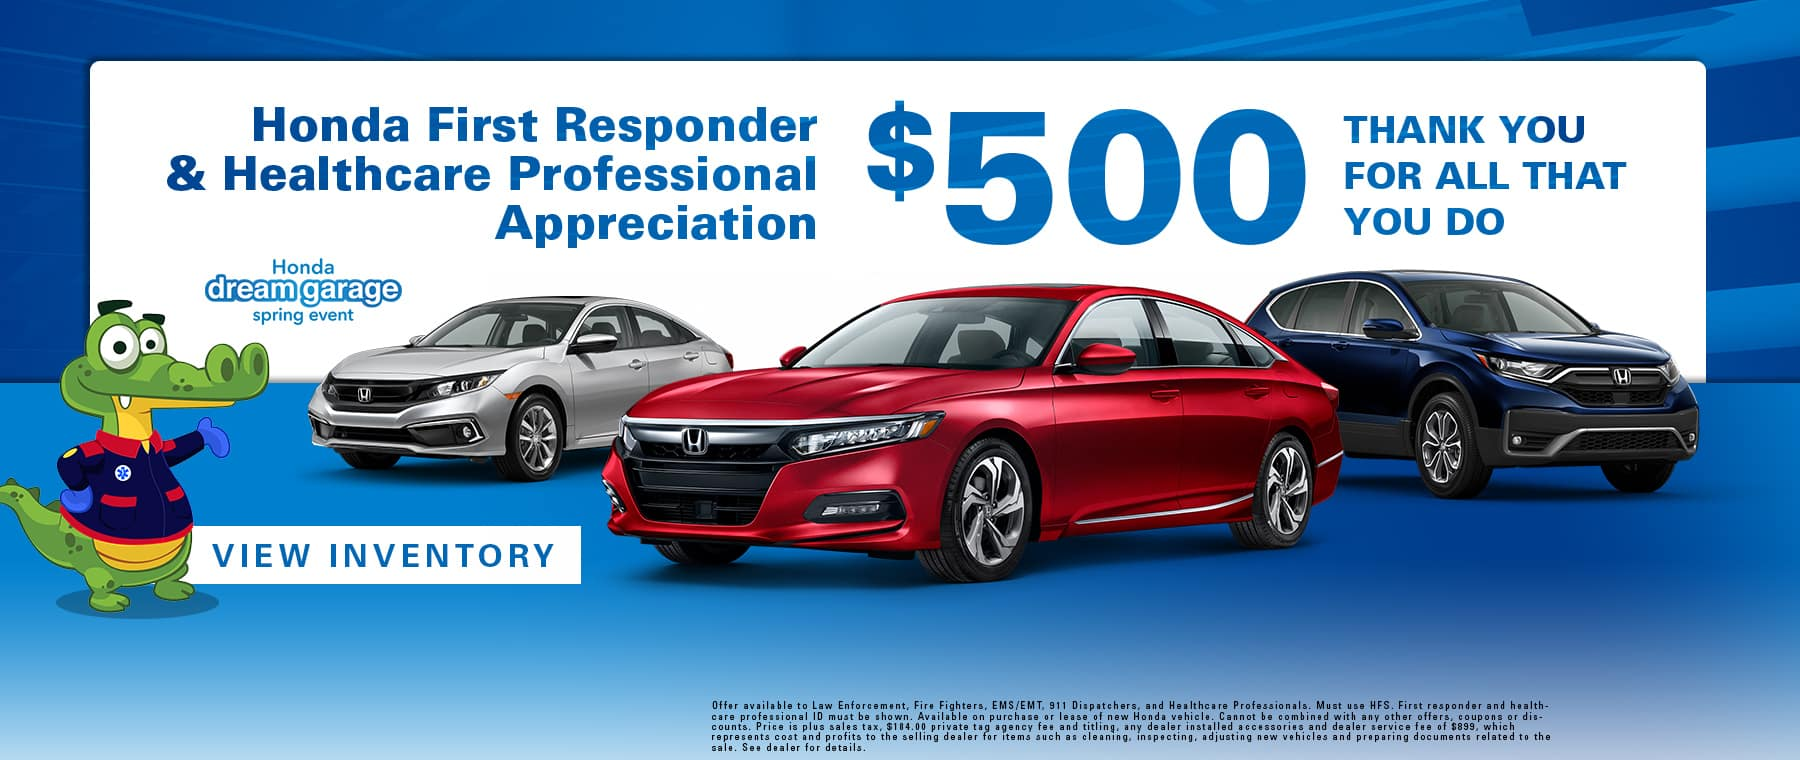 Honda First Responder & Healthcare Professional Appreciation | $500 | Thank You For All That You Do